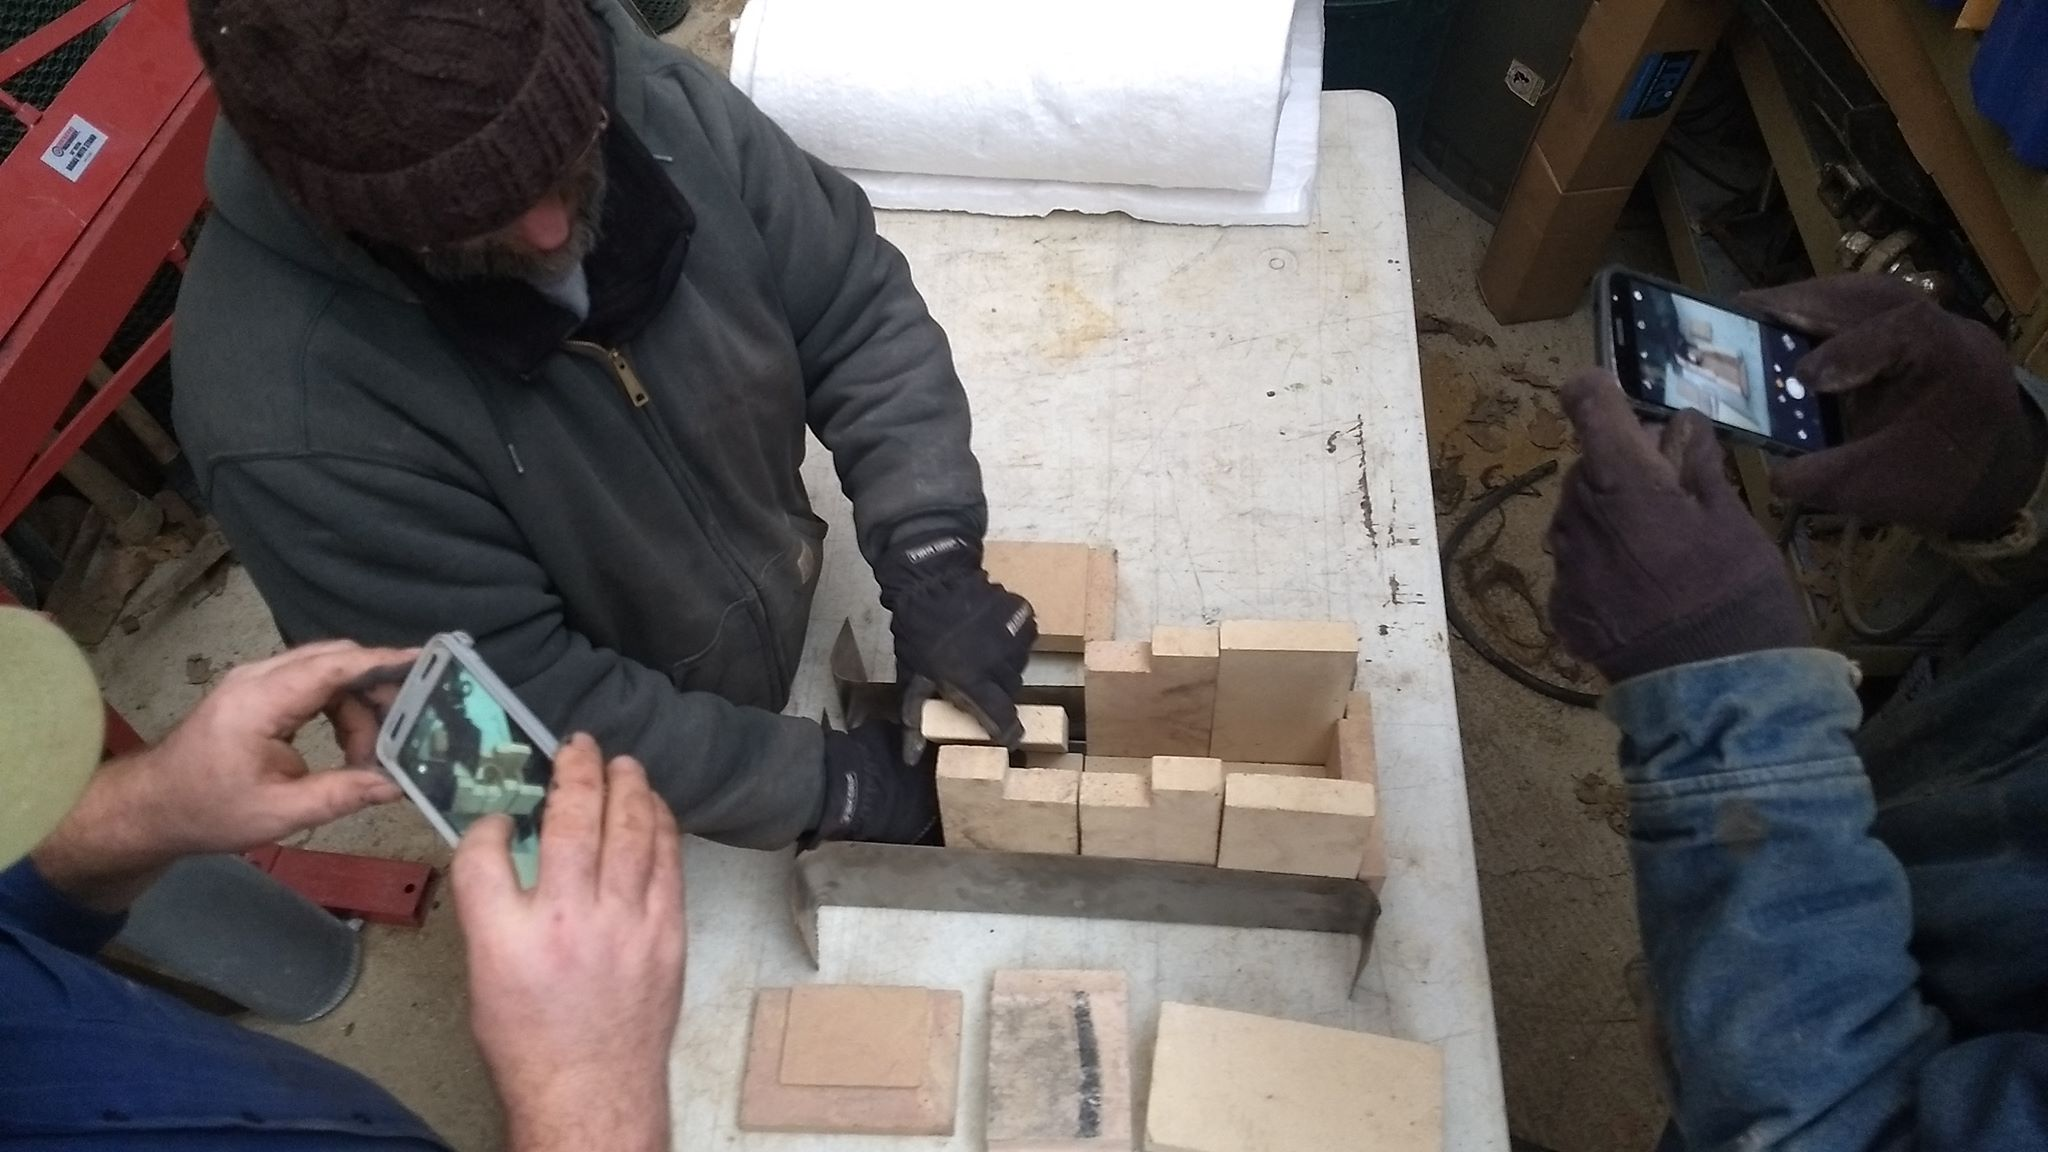 Positioning the cut bricks